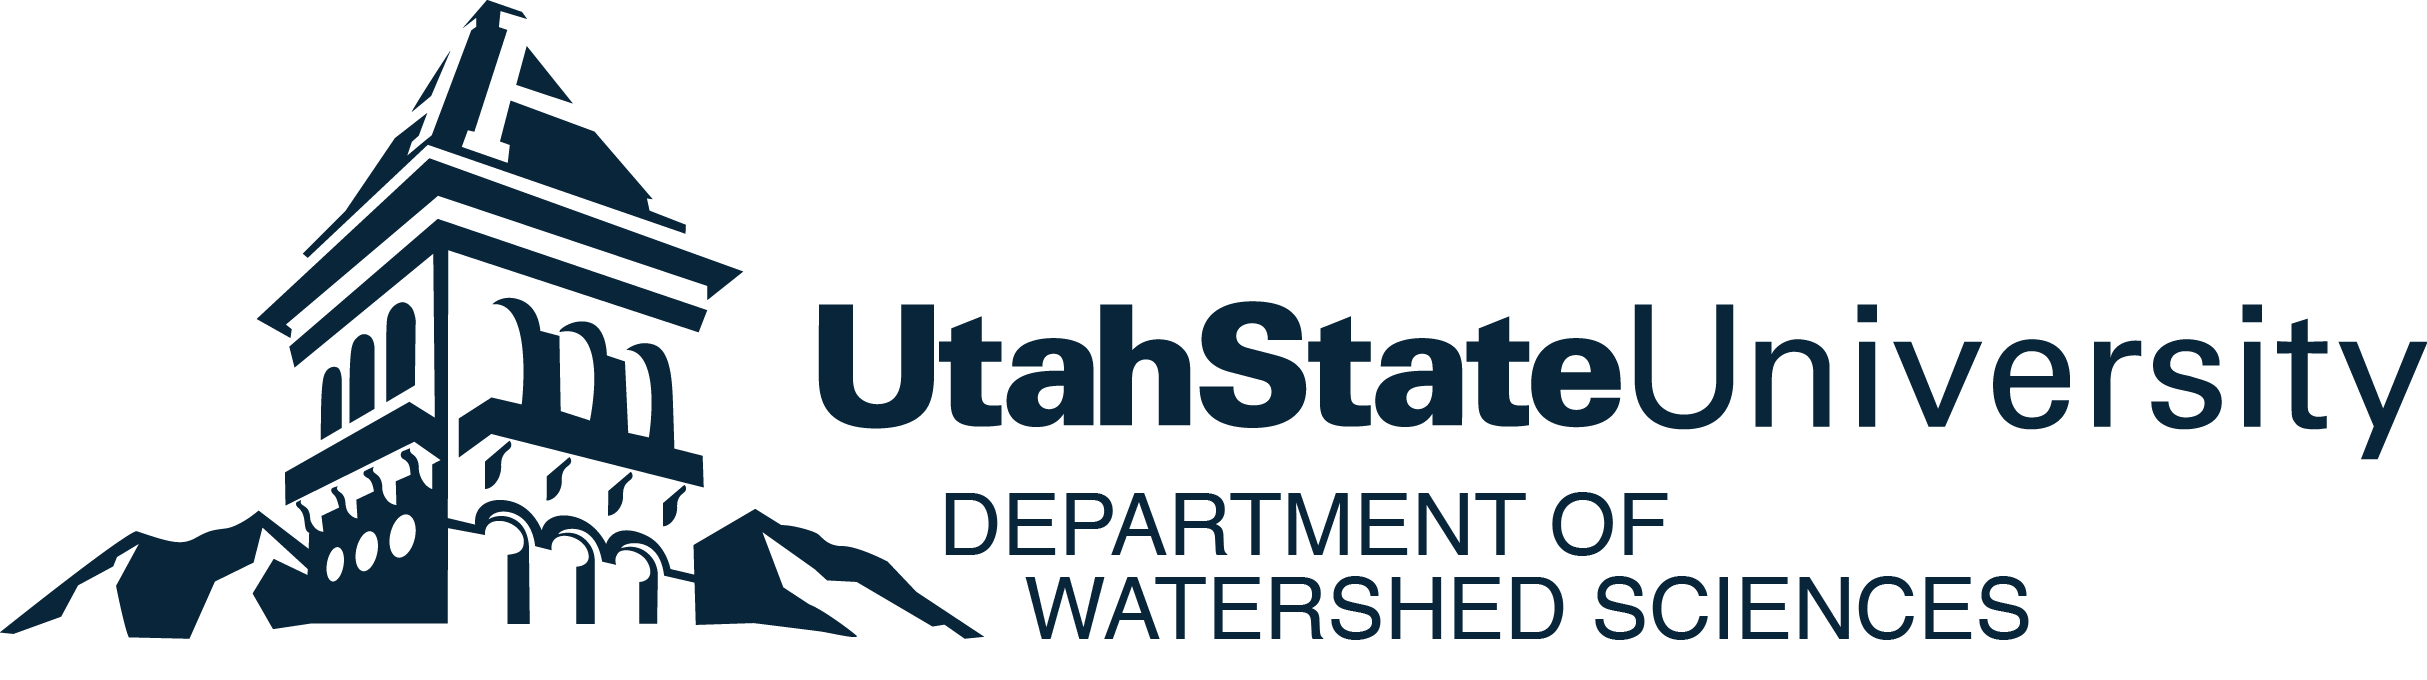 Department of Watershed Sciences Logo